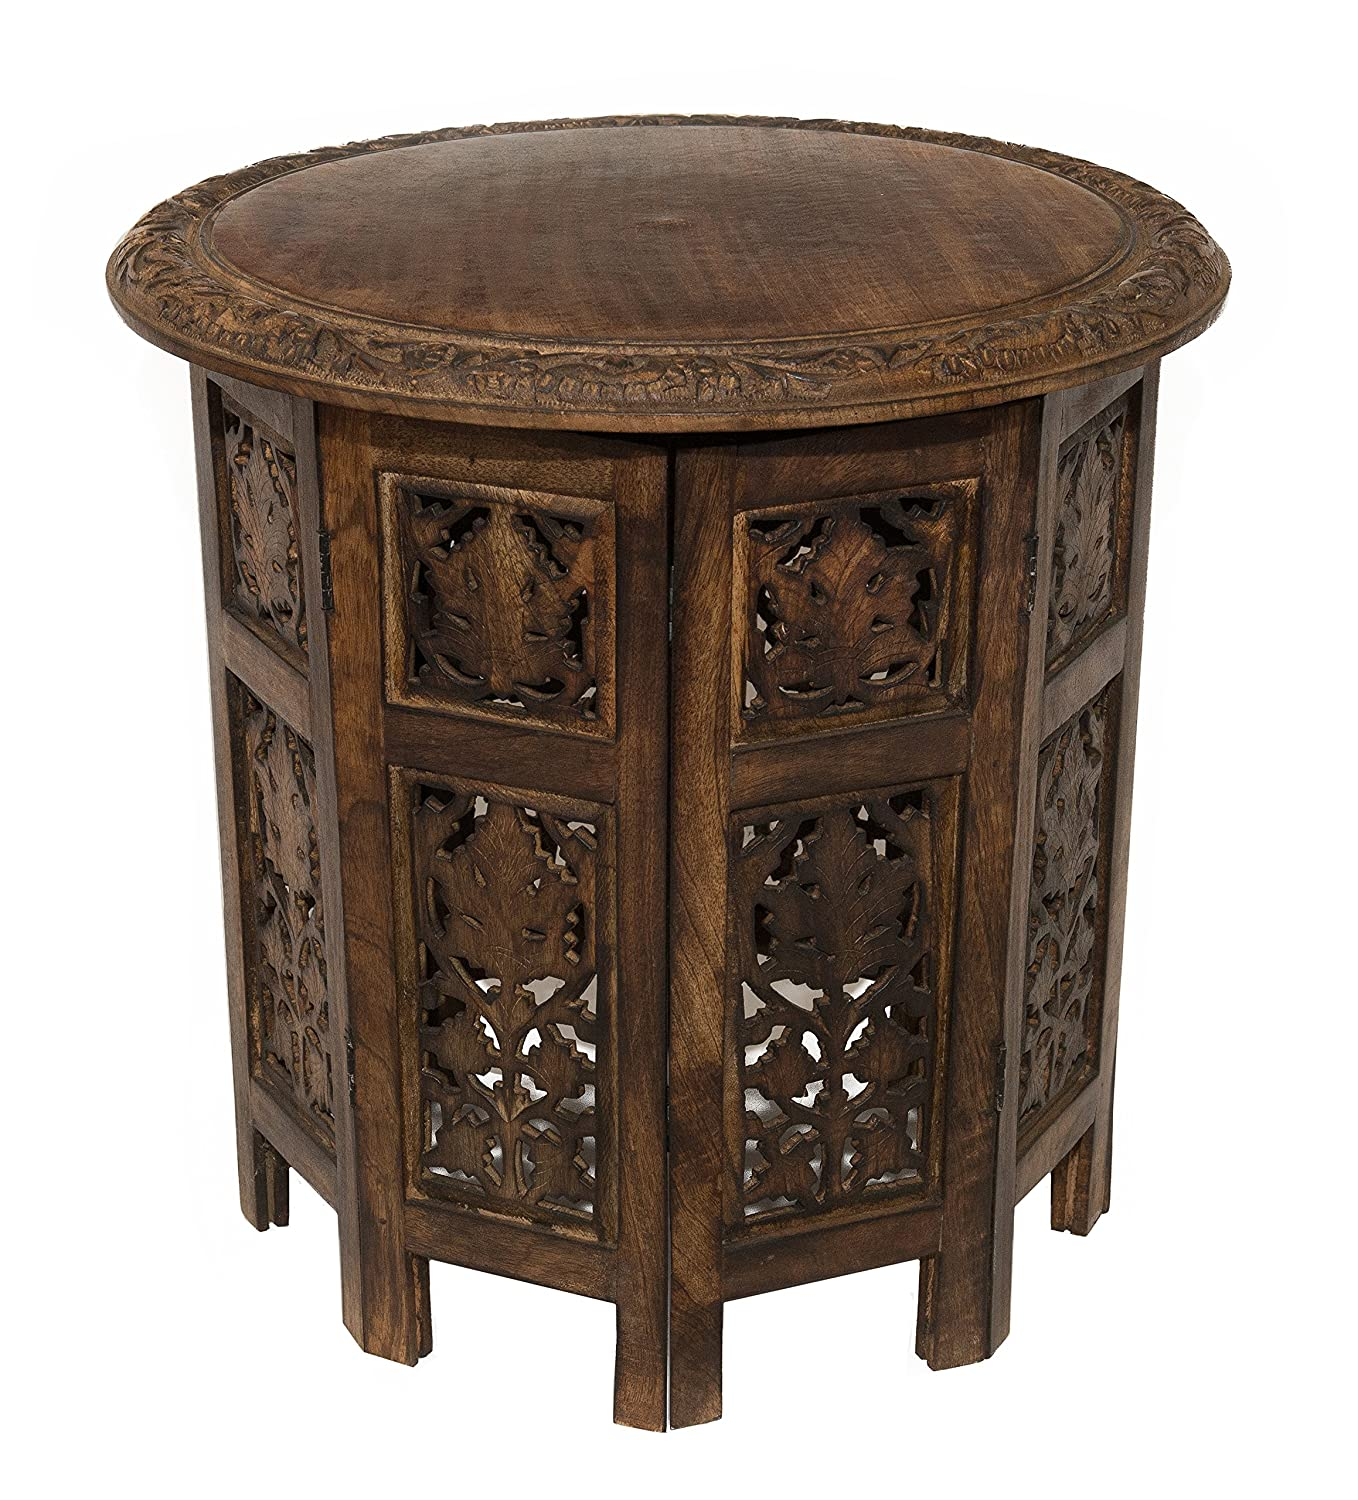 amazoncom cotton craft jaipur solid wood hand carved accent coffee table 18 inch round top x 18 inch high antique brown kitchen u0026 dining